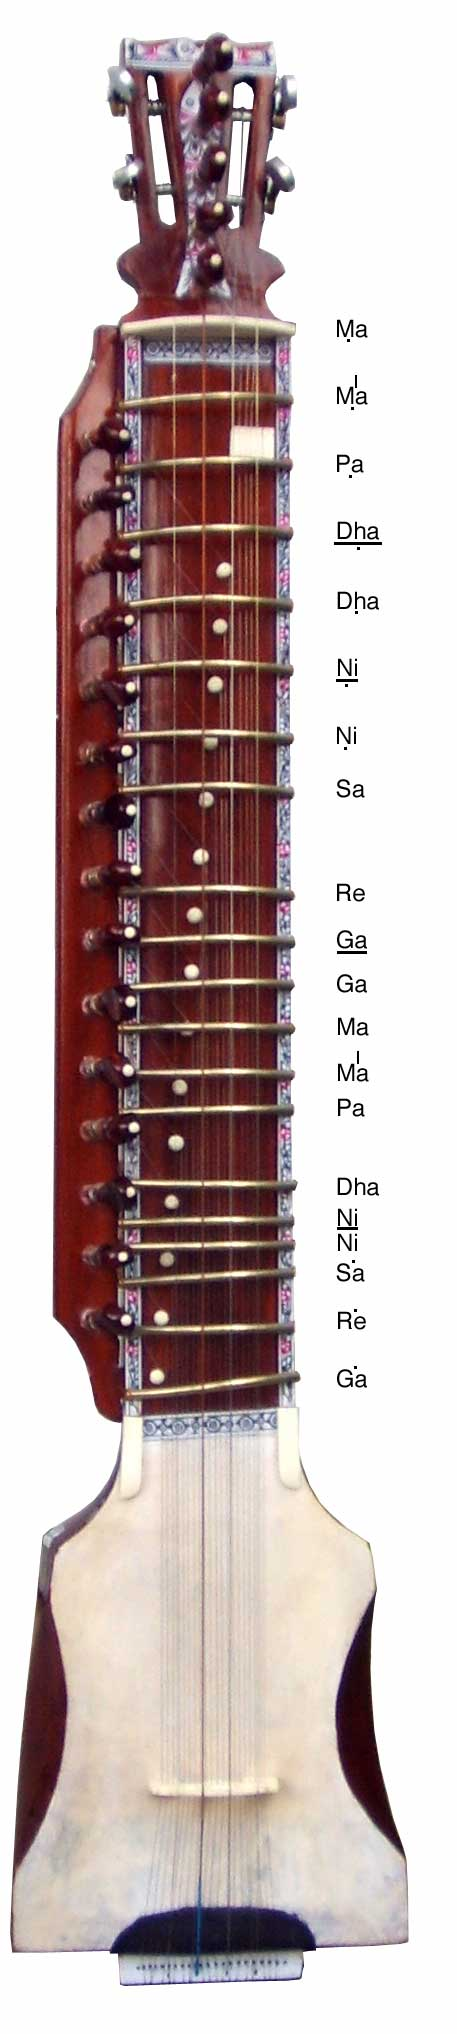 the frets of the Dilruba